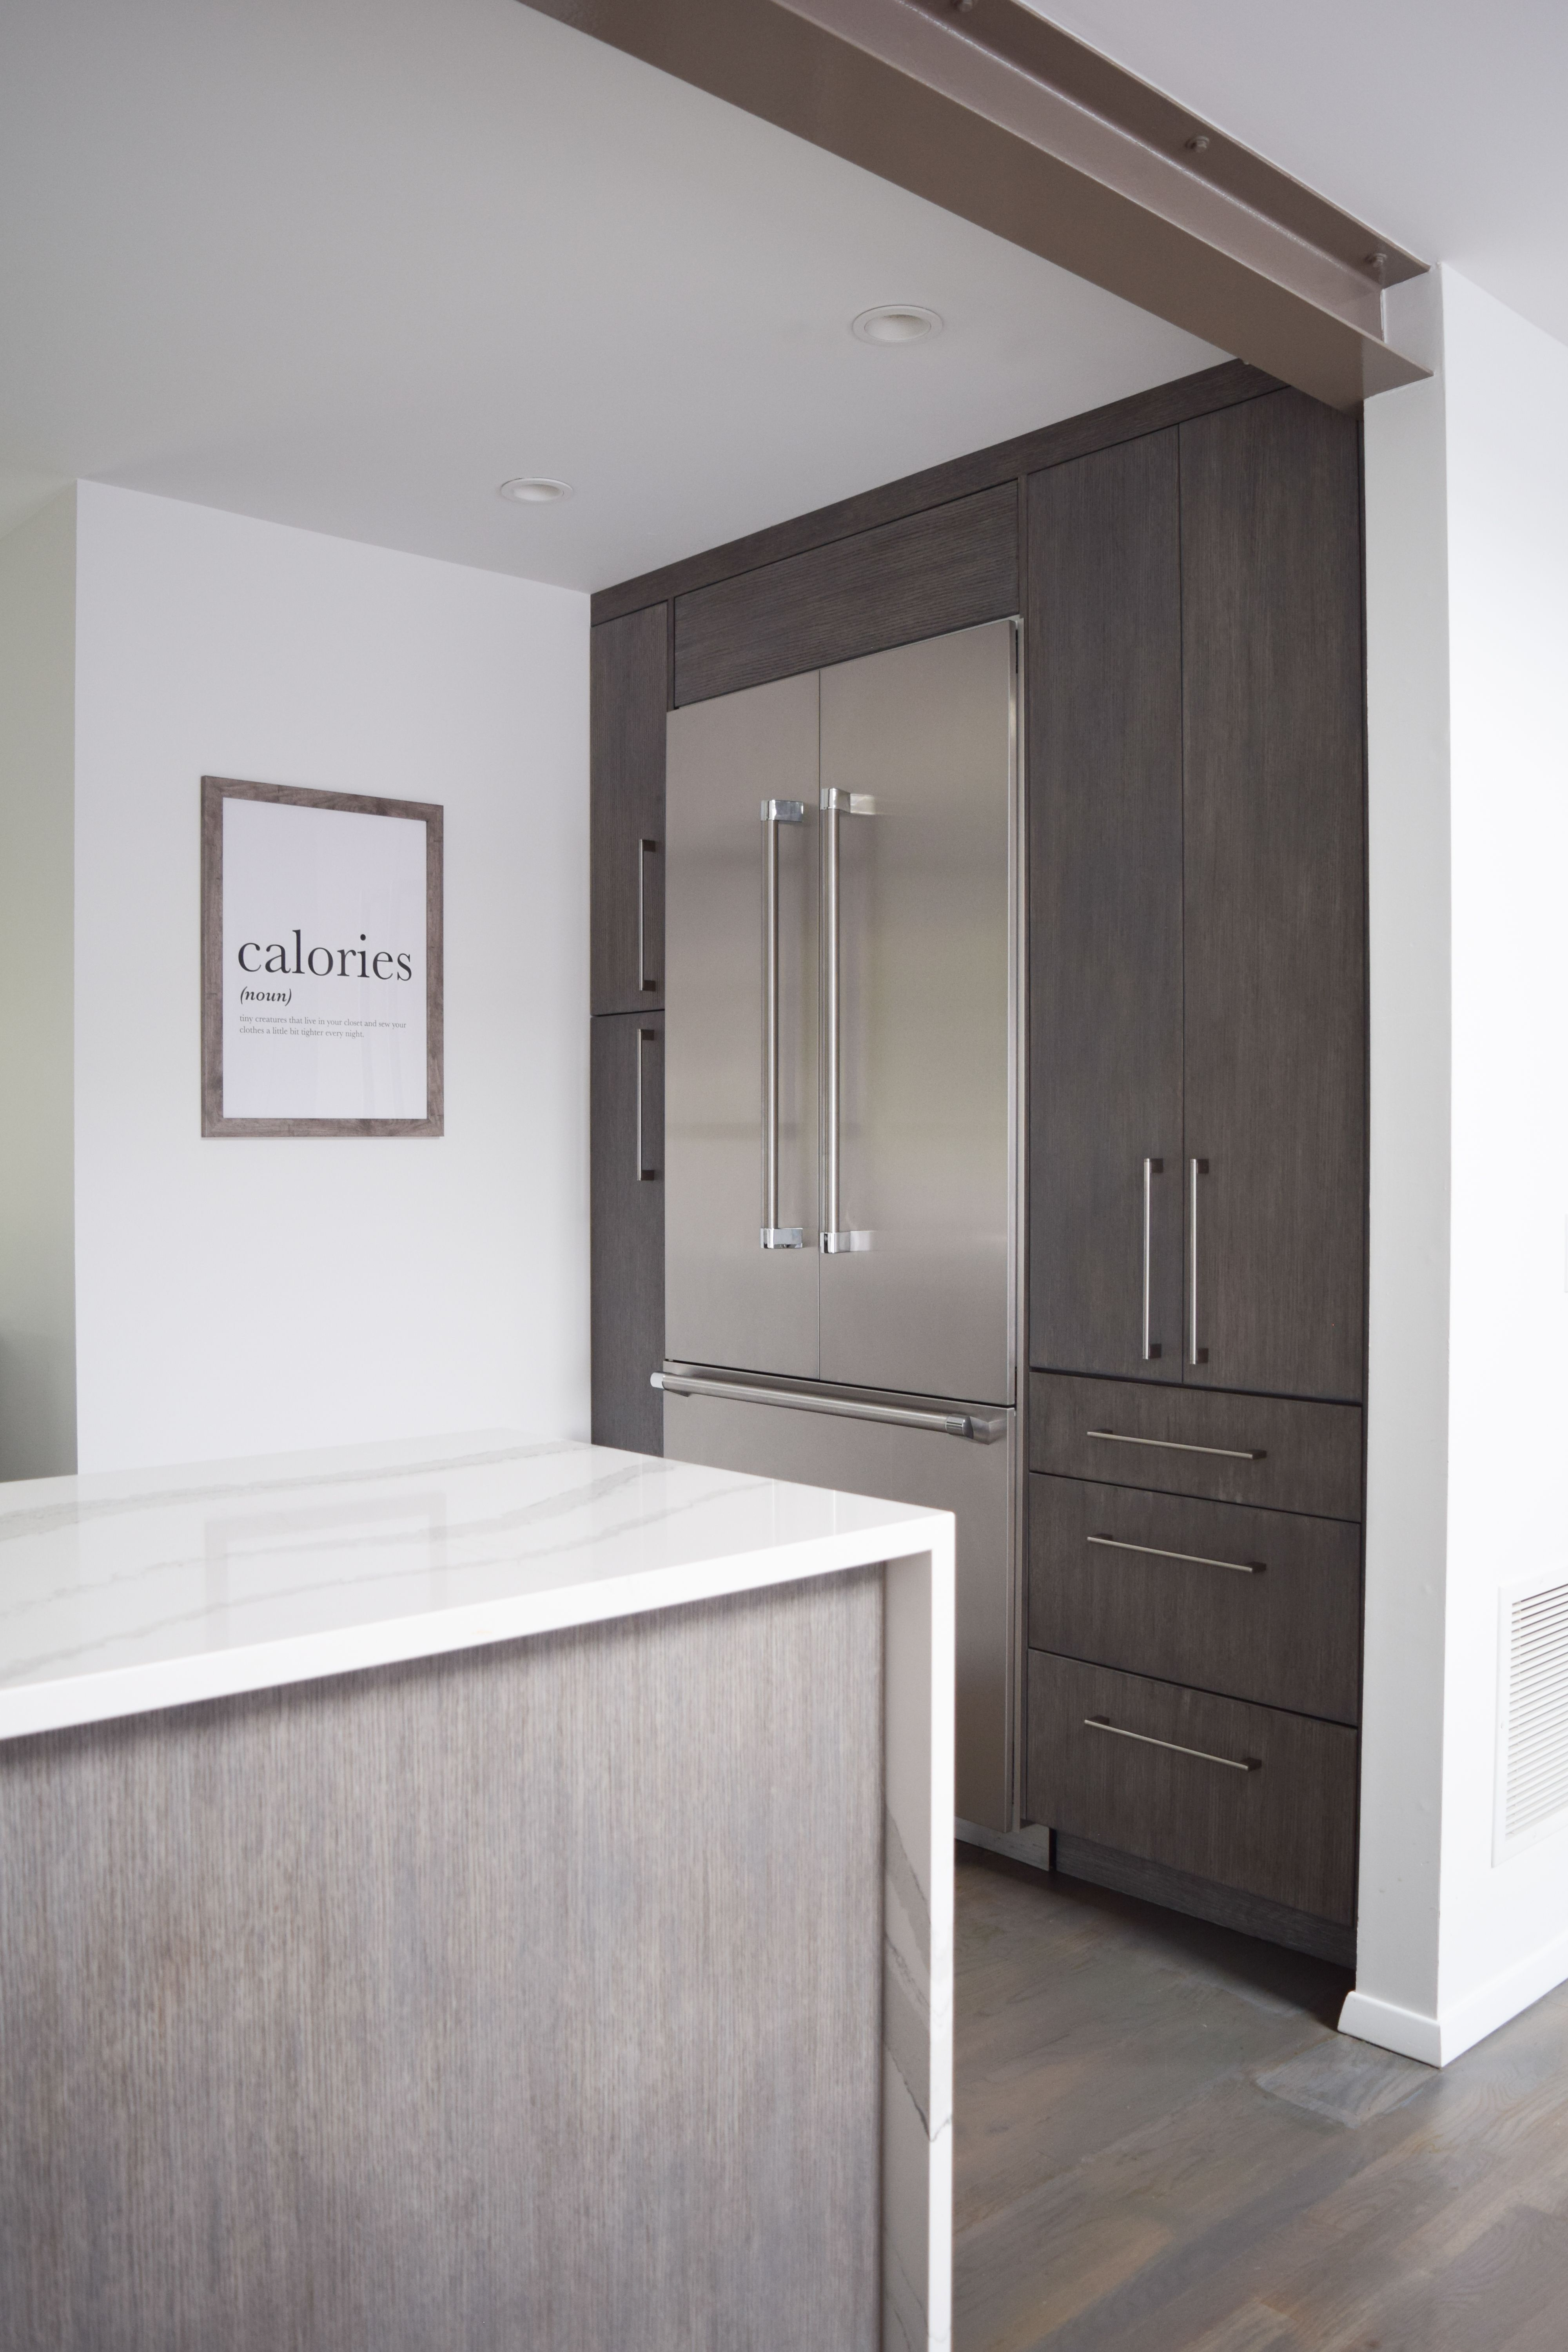 Pin by Coastal Cabinet Works on Our Work   Cabinetry ...